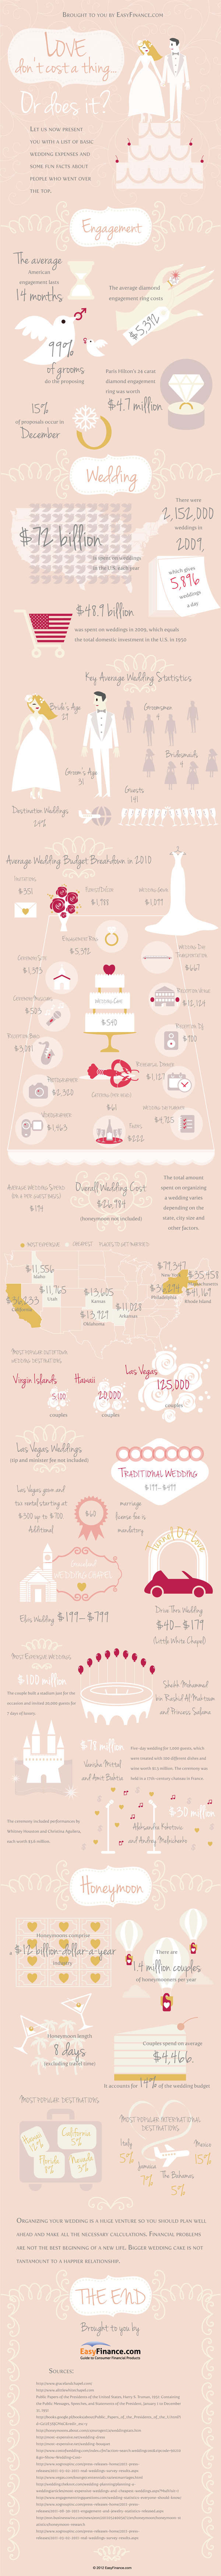 Love Don't Cost a Thing. Or Does It? (Infographic) 